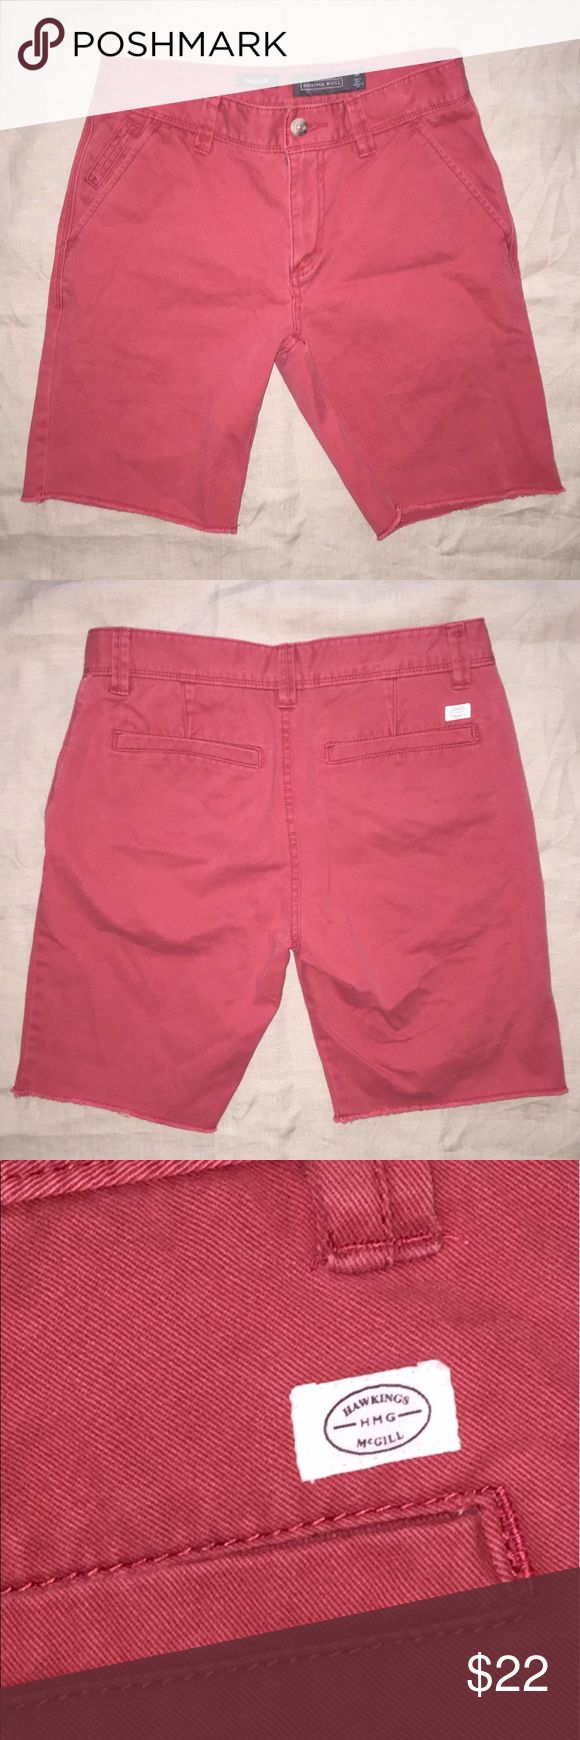 """Mens Urban Outfitters Hawkings McGill Chino shorts Men's Chino shorts by Hawkings McGill from Urban Outfitters. Light red with garment washed finish. Size 30; waist - 15.5""""; inseam - 9"""" Urban Outfitters Shorts Flat Front"""